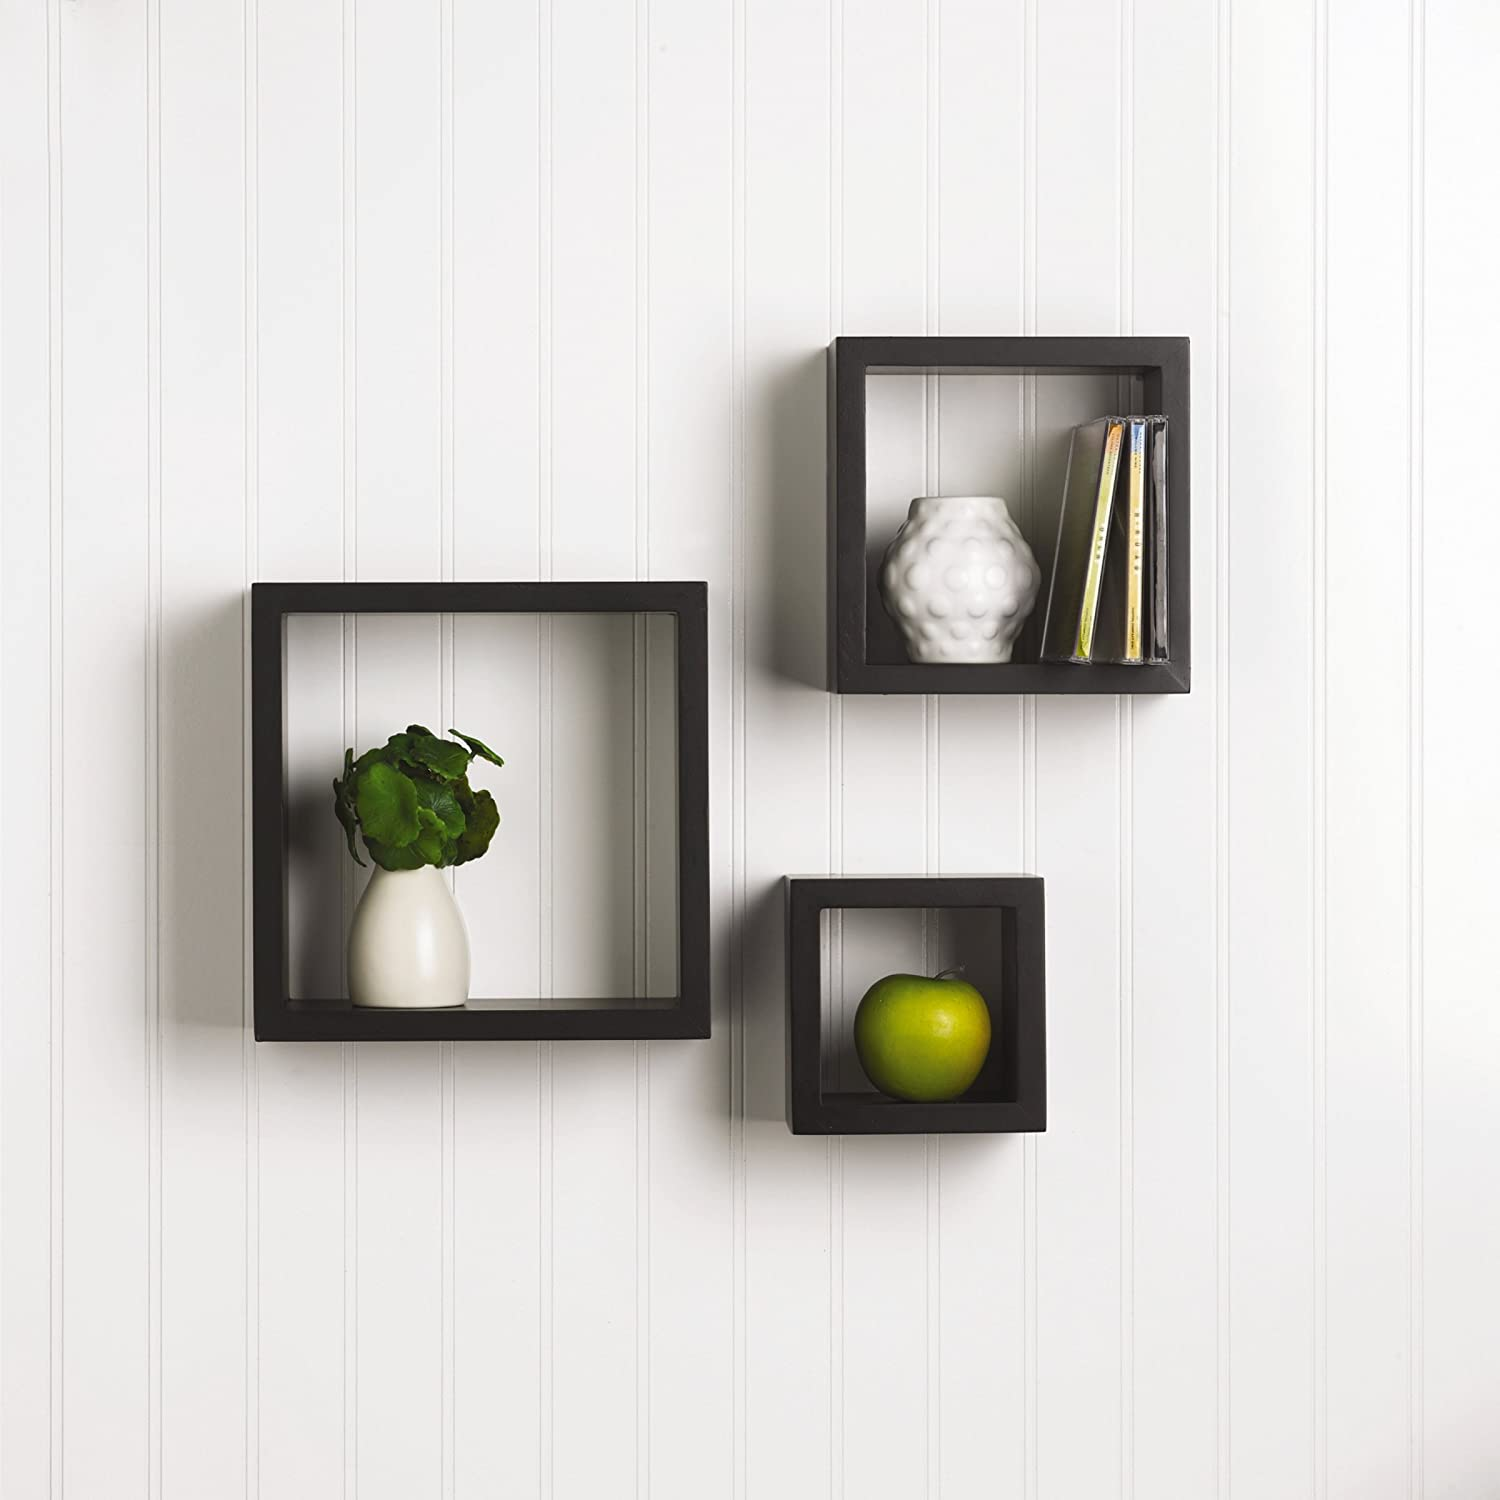 wall than box look cabinets ikea further cubes ideas these from and shelf update solution cube pin storage handy for a no stylish contemporary home easy interior